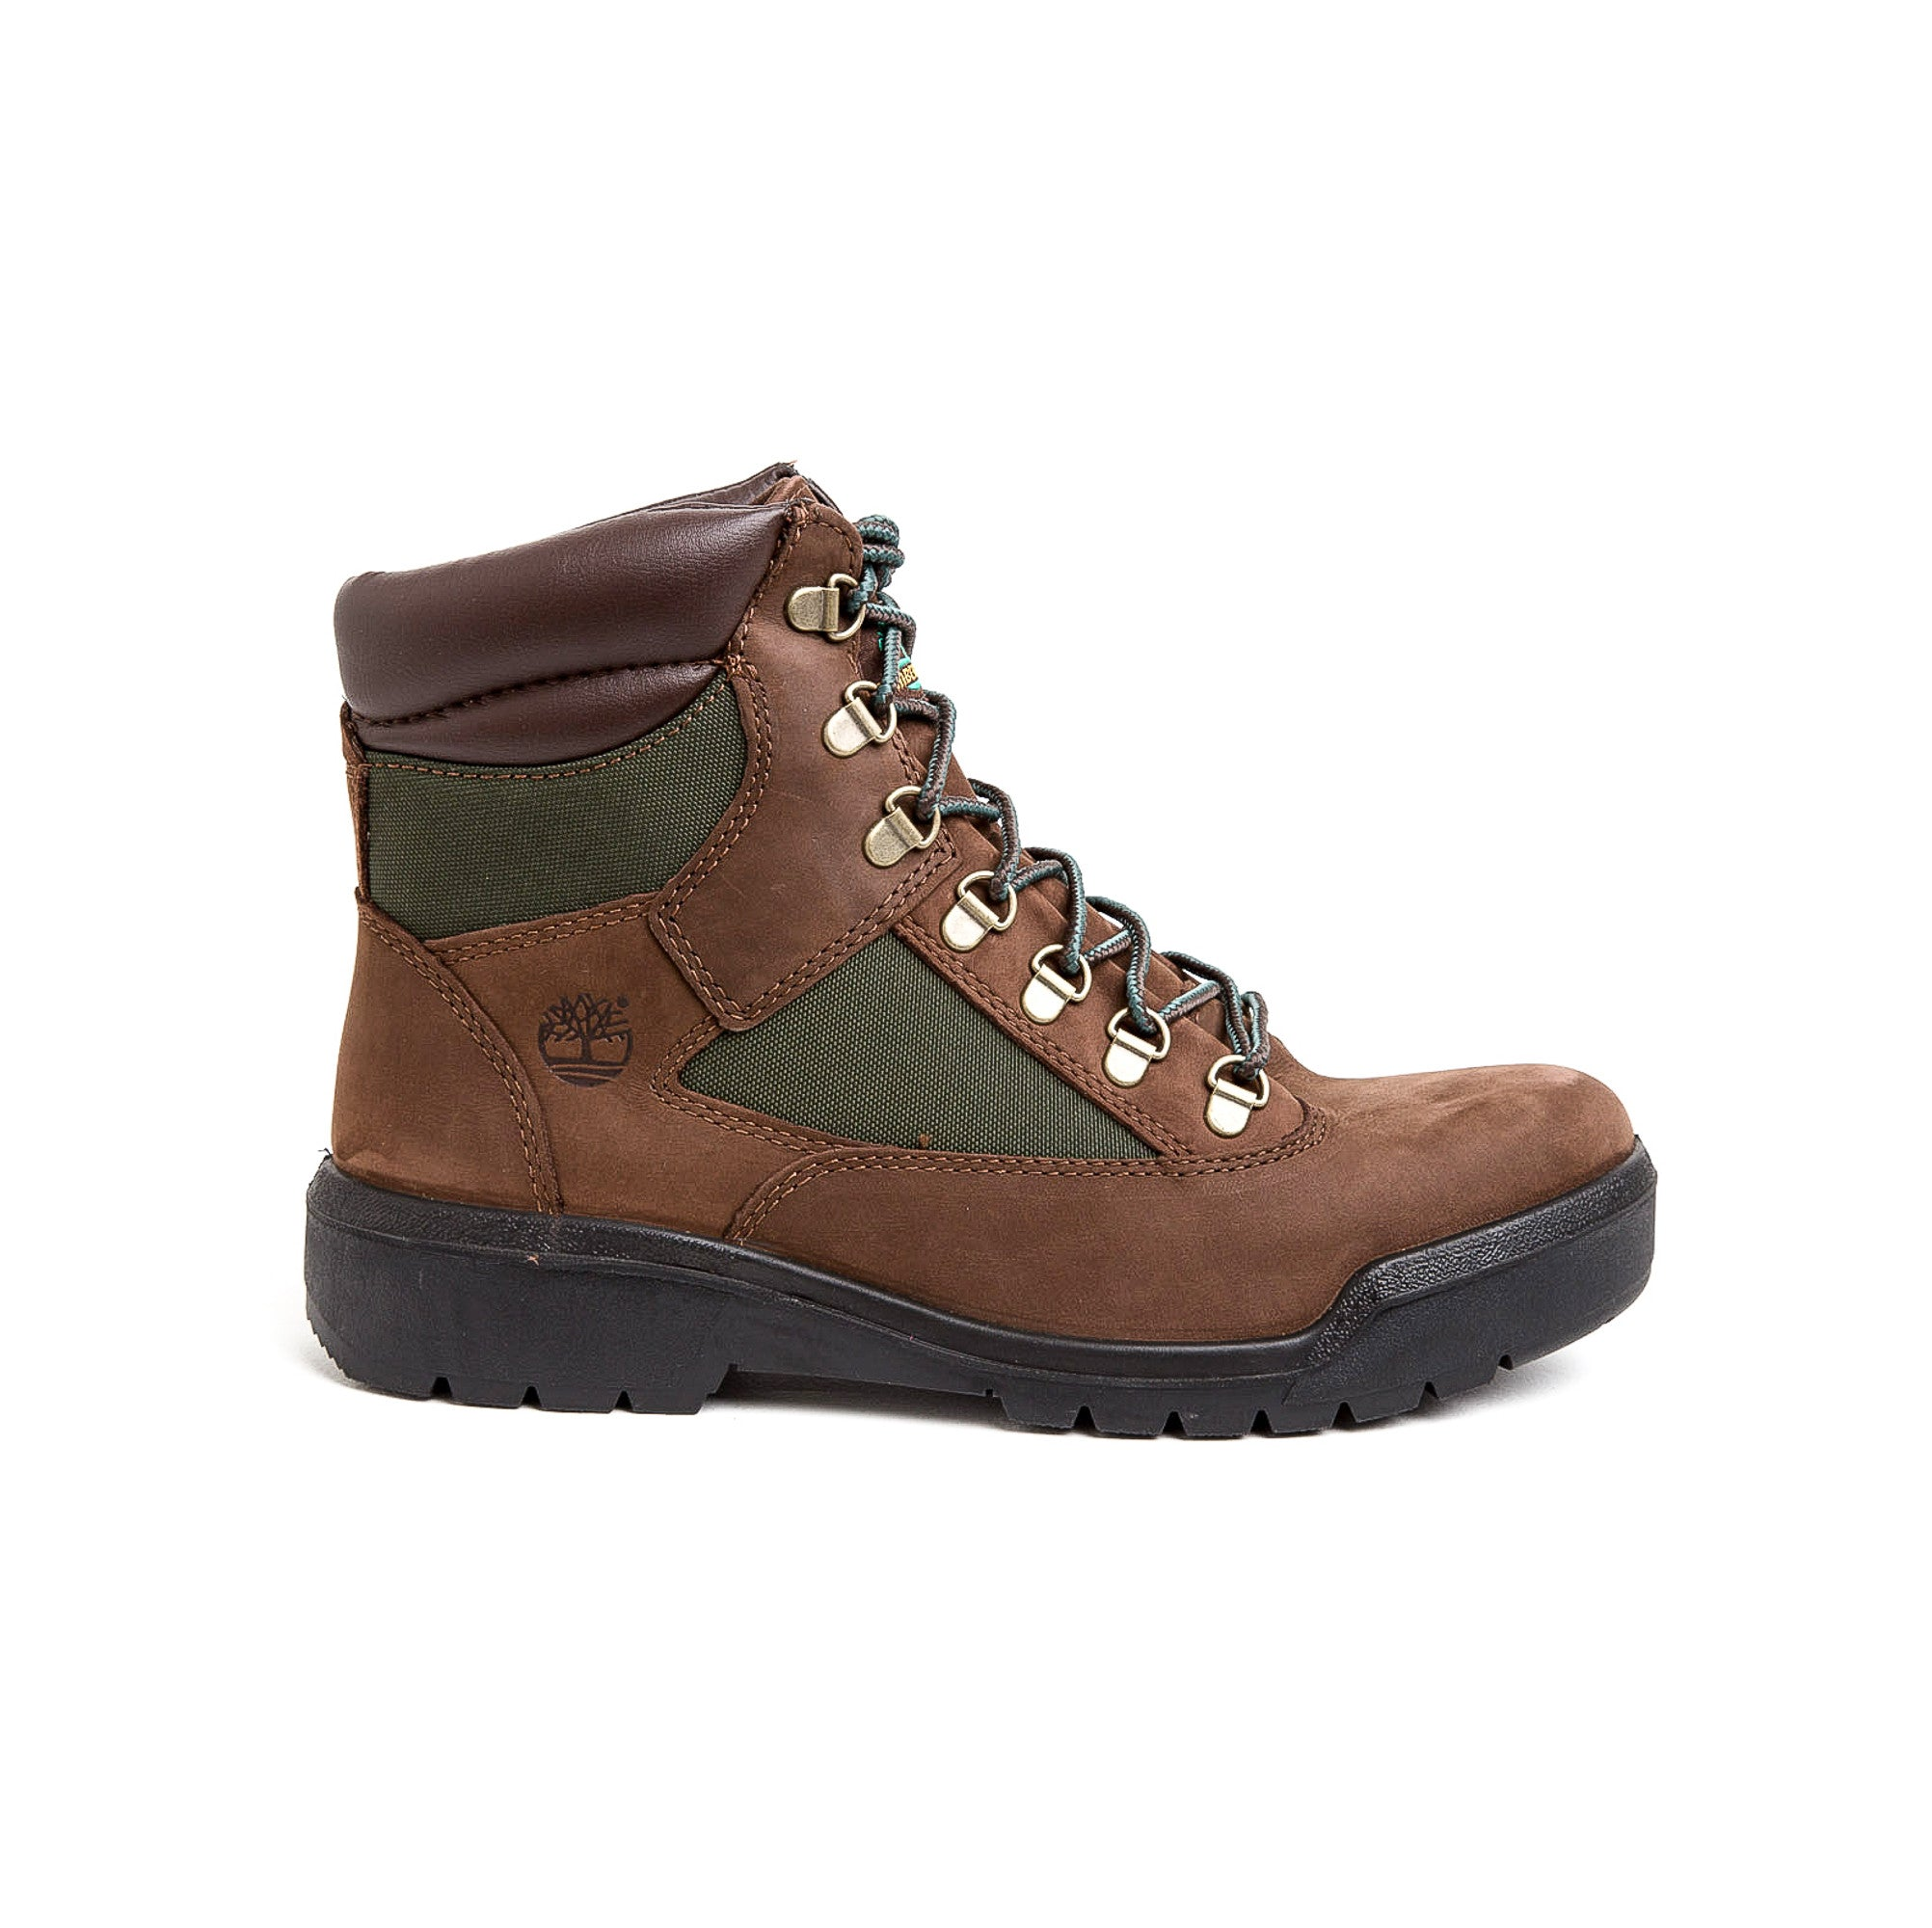 "Field Boot 6inch ""Beef and Broccoli"""